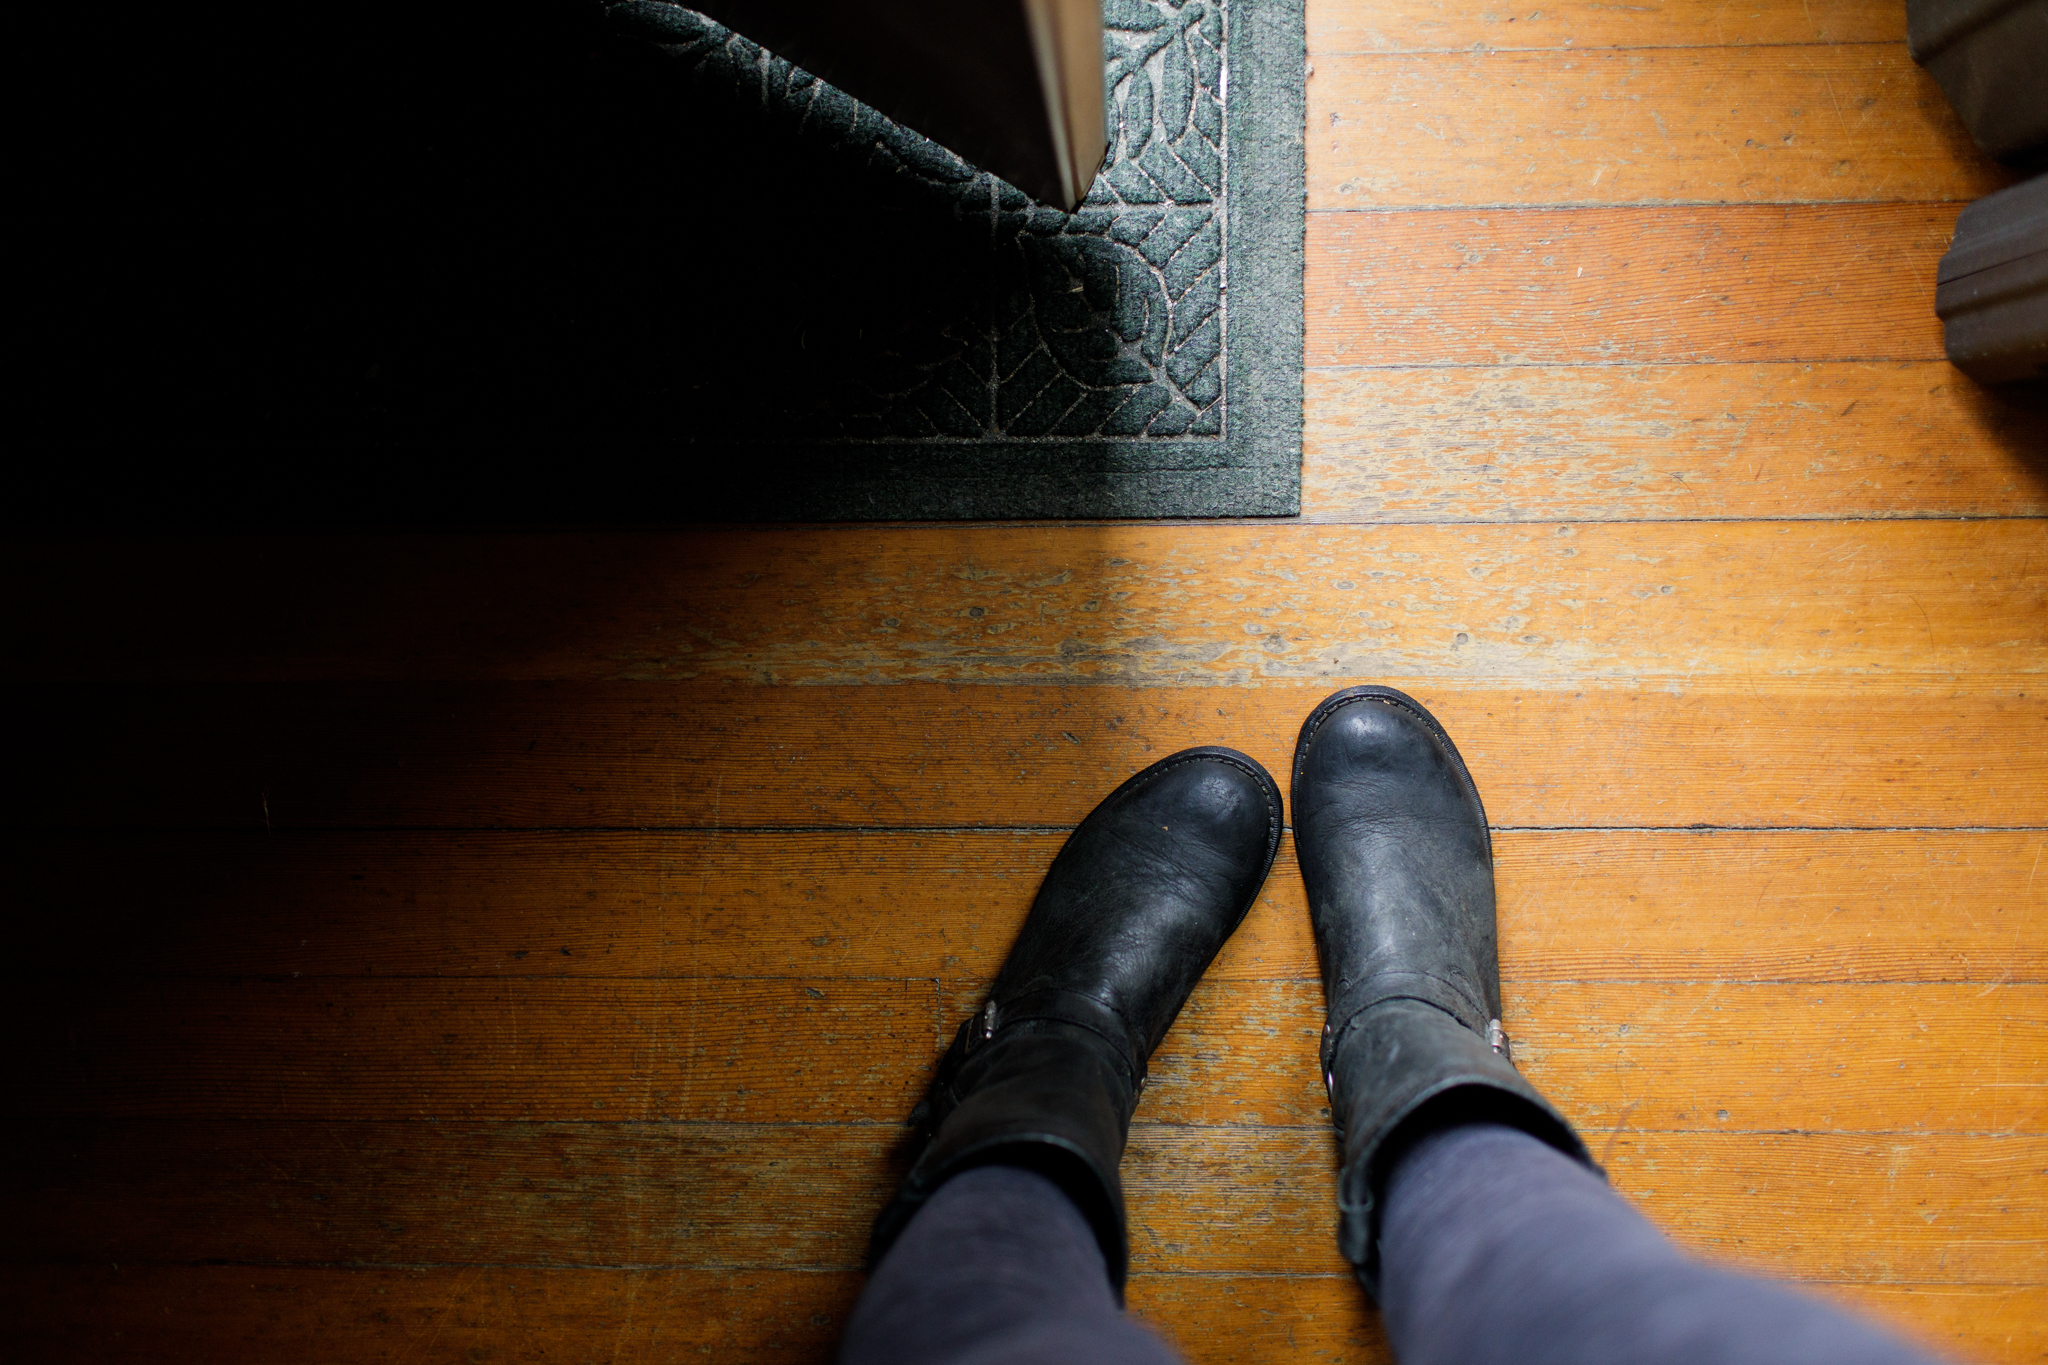 image of woman's legs and boots, standing in a doorway, taken from above